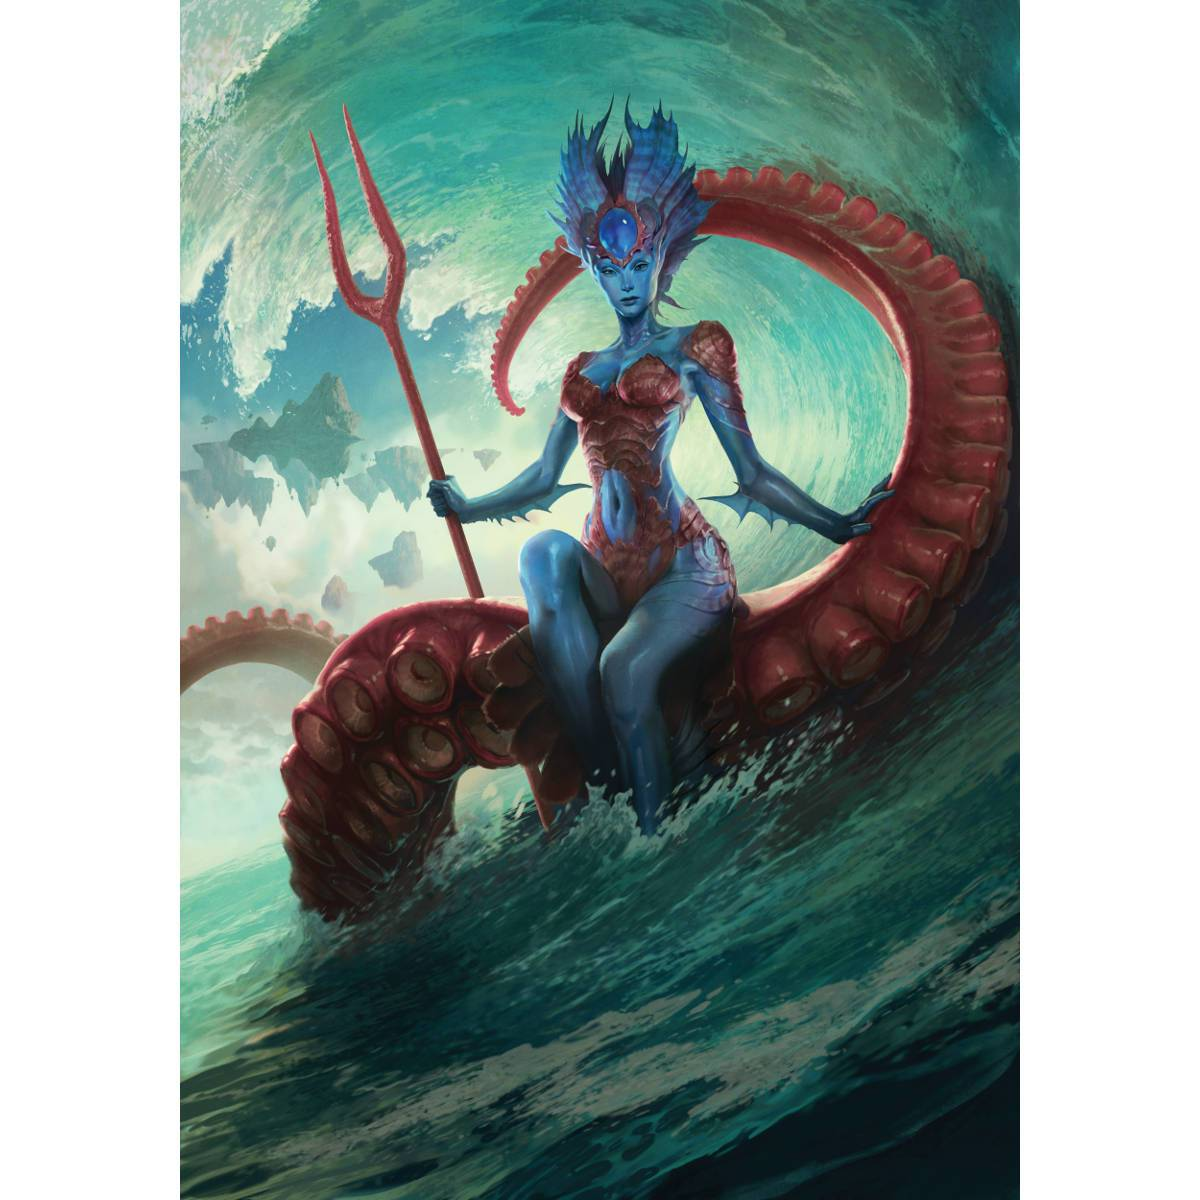 Kiora, Master of the Depths Print - Print - Original Magic Art - Accessories for Magic the Gathering and other card games